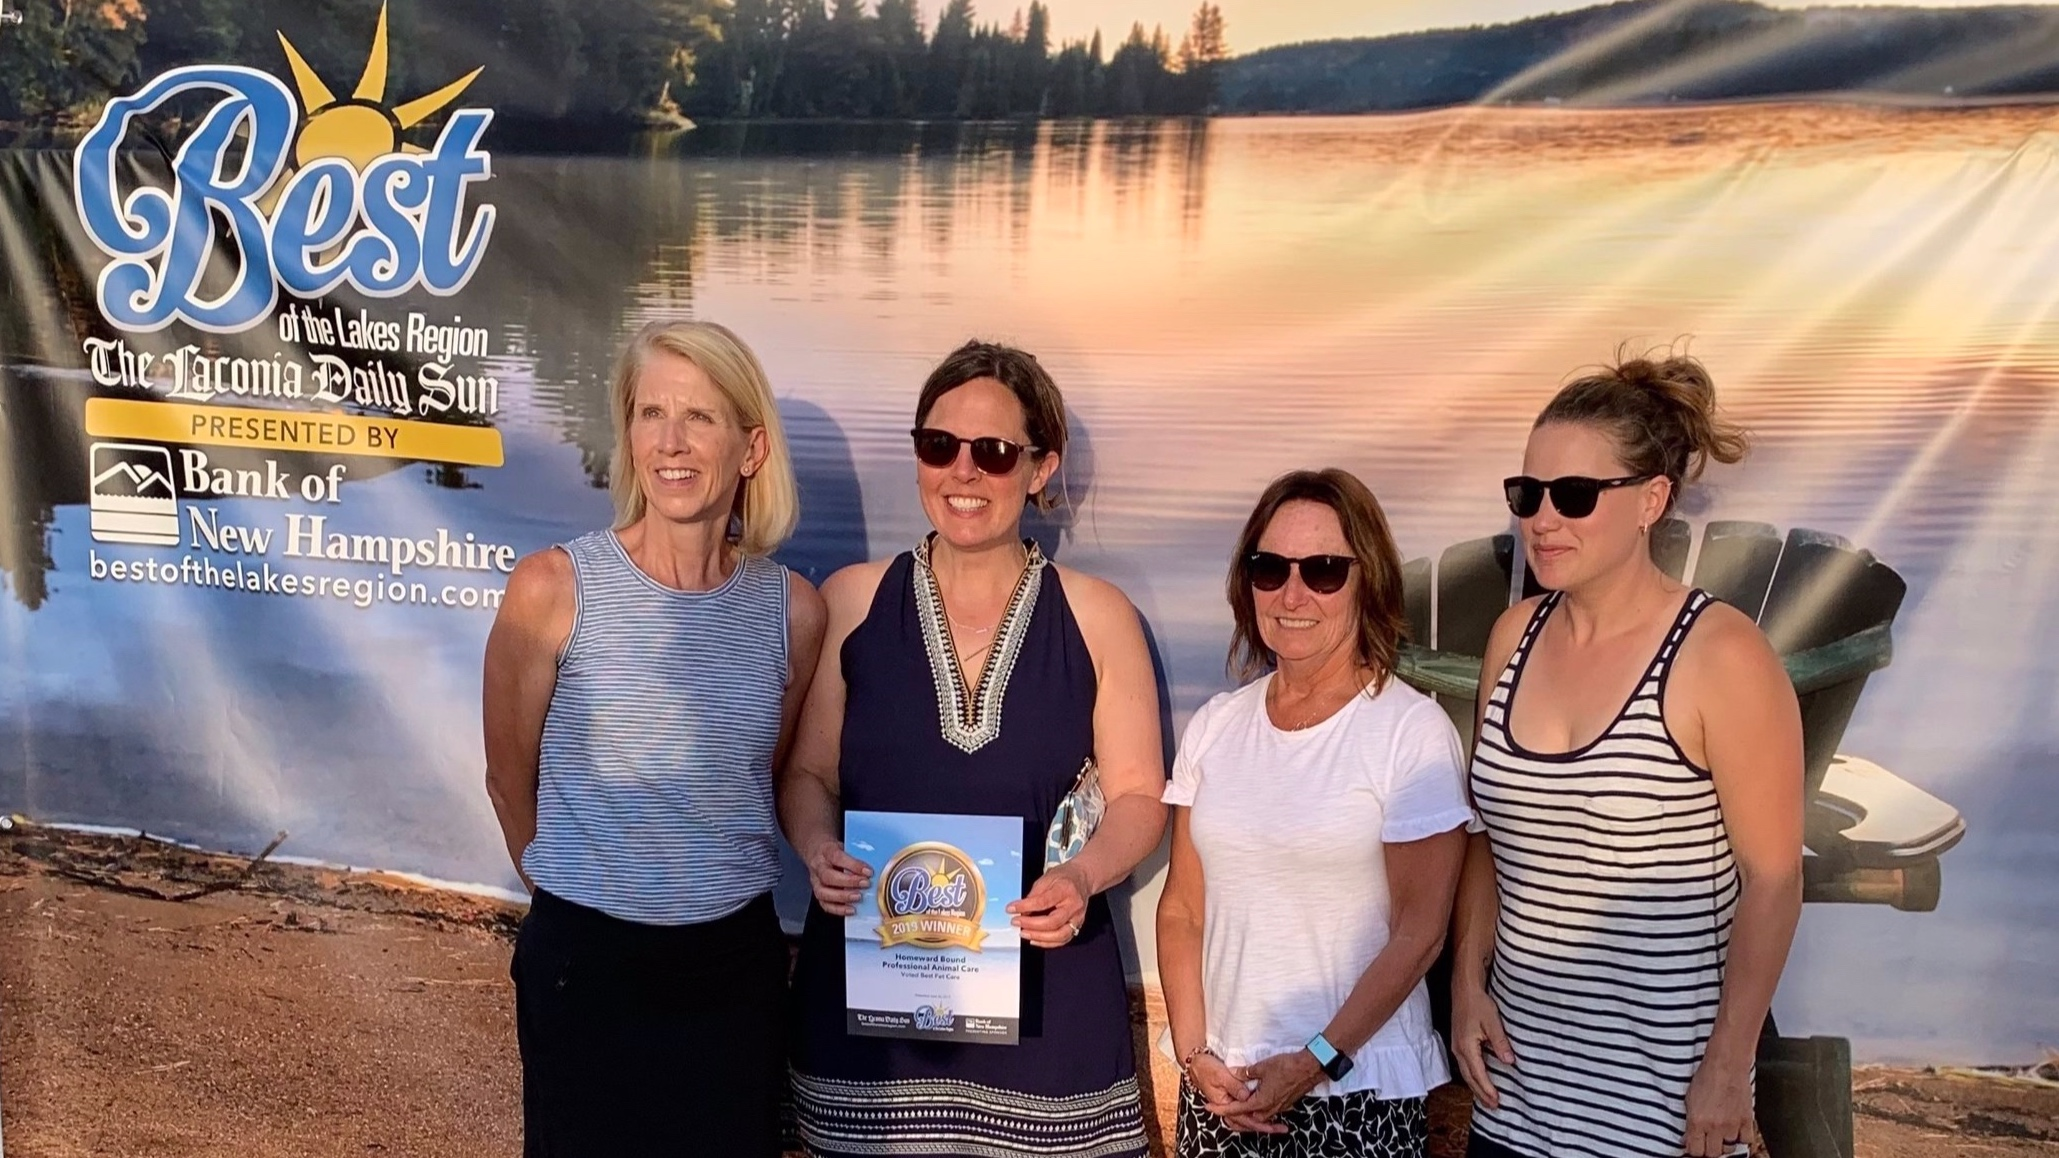 Homeward Bound employees, along with owner Alix, accept Best of the Lakes Region Award at the Best of the Lakes Region Beach Party. From L to R: Jane, Alix, Lee, and Emily.